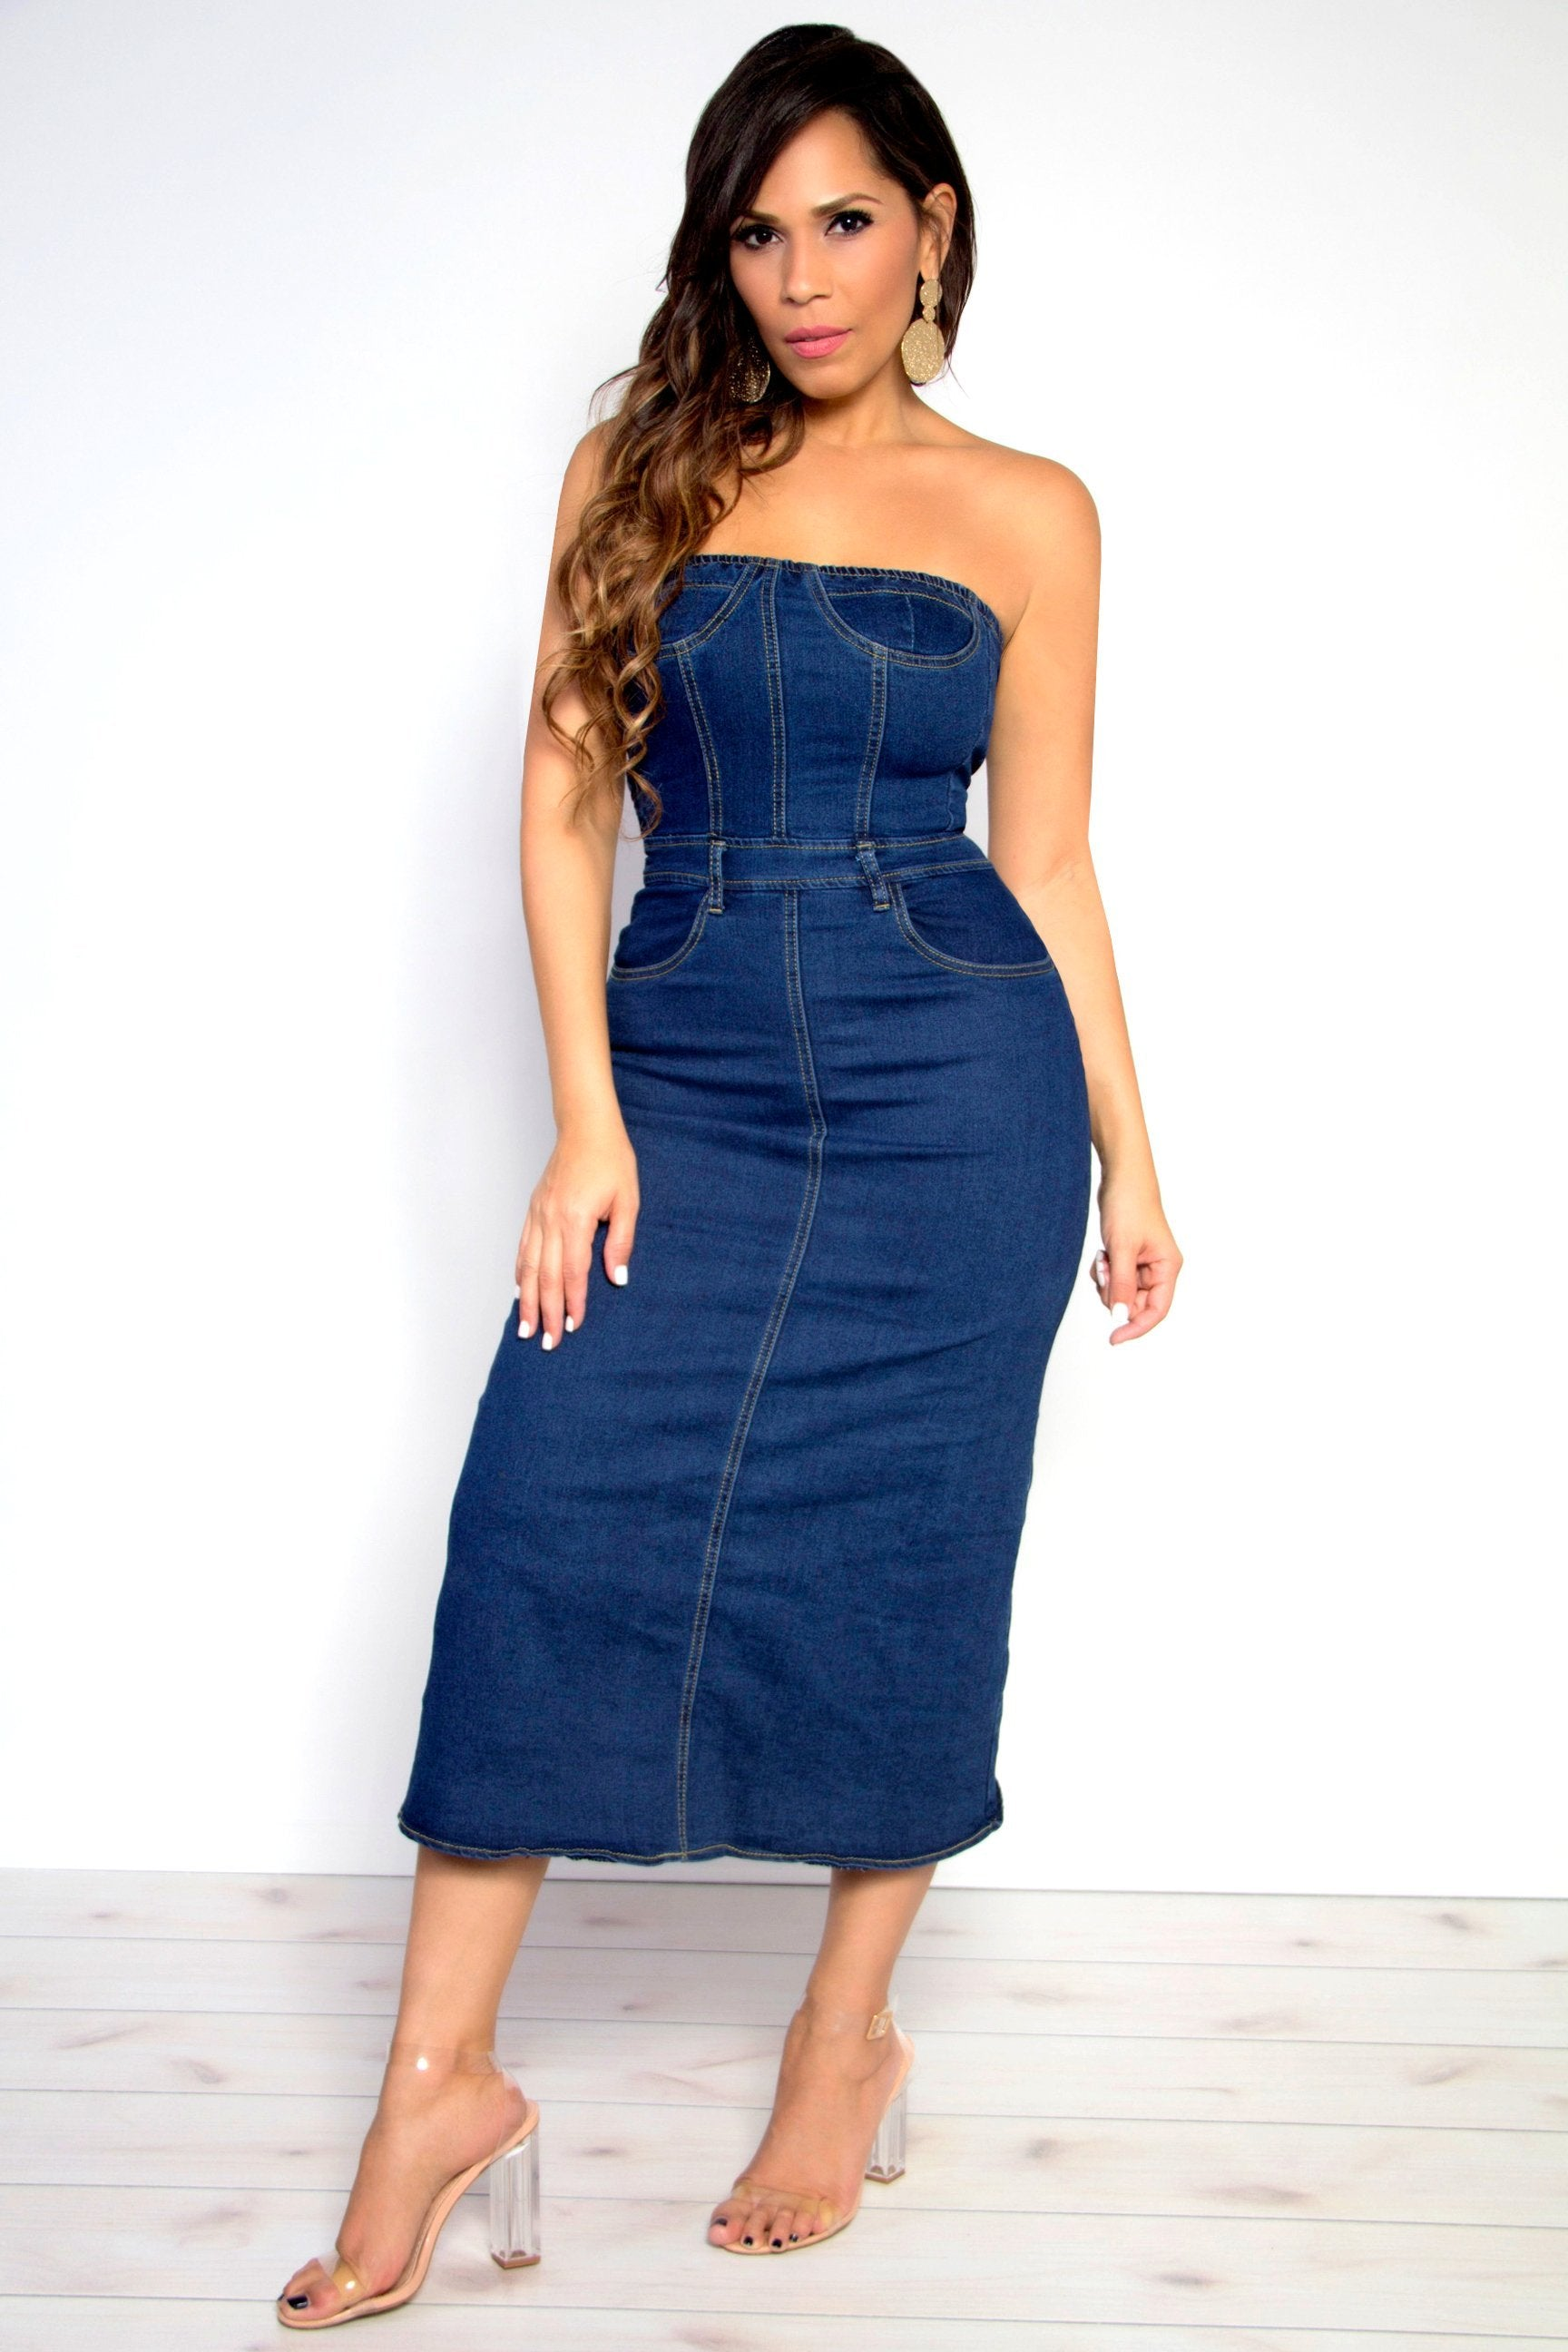 8f87eae891 Chic Strapless Bodycon Dark Wash Denim Midi Dress - MY SEXY STYLES